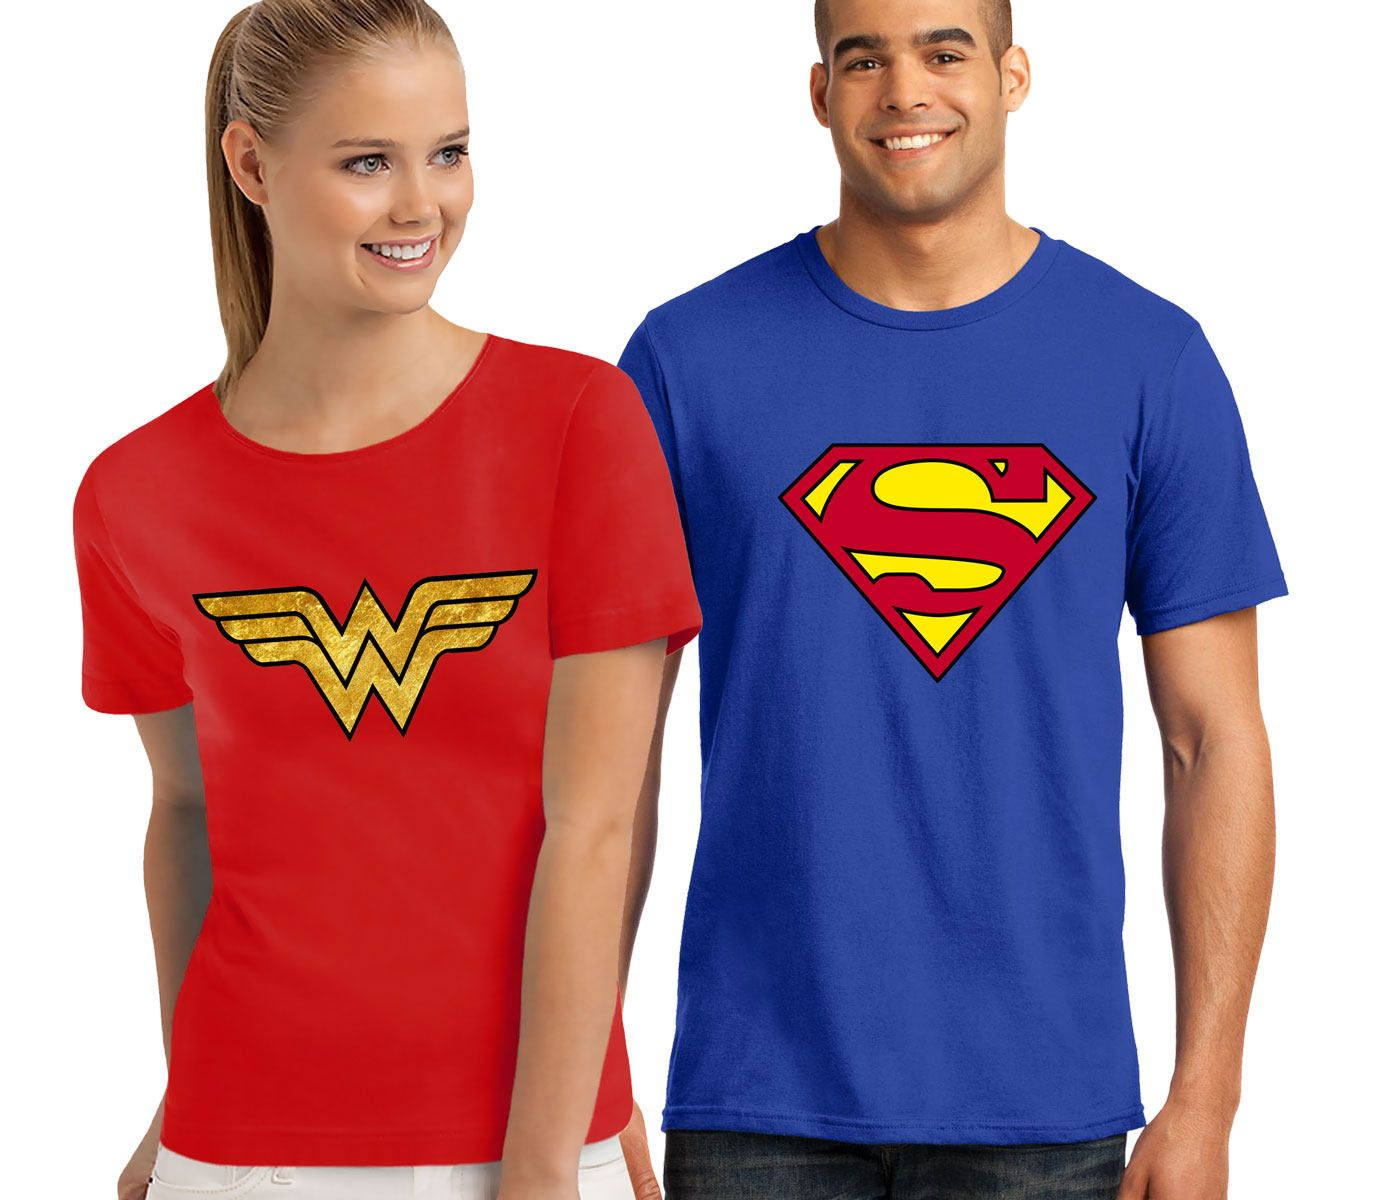 58a794dee8 Superheroes Couple T-shirts Supermen And Supergirl Shirt Men's Women's T- Shirt by DesignApparelStore on Etsy